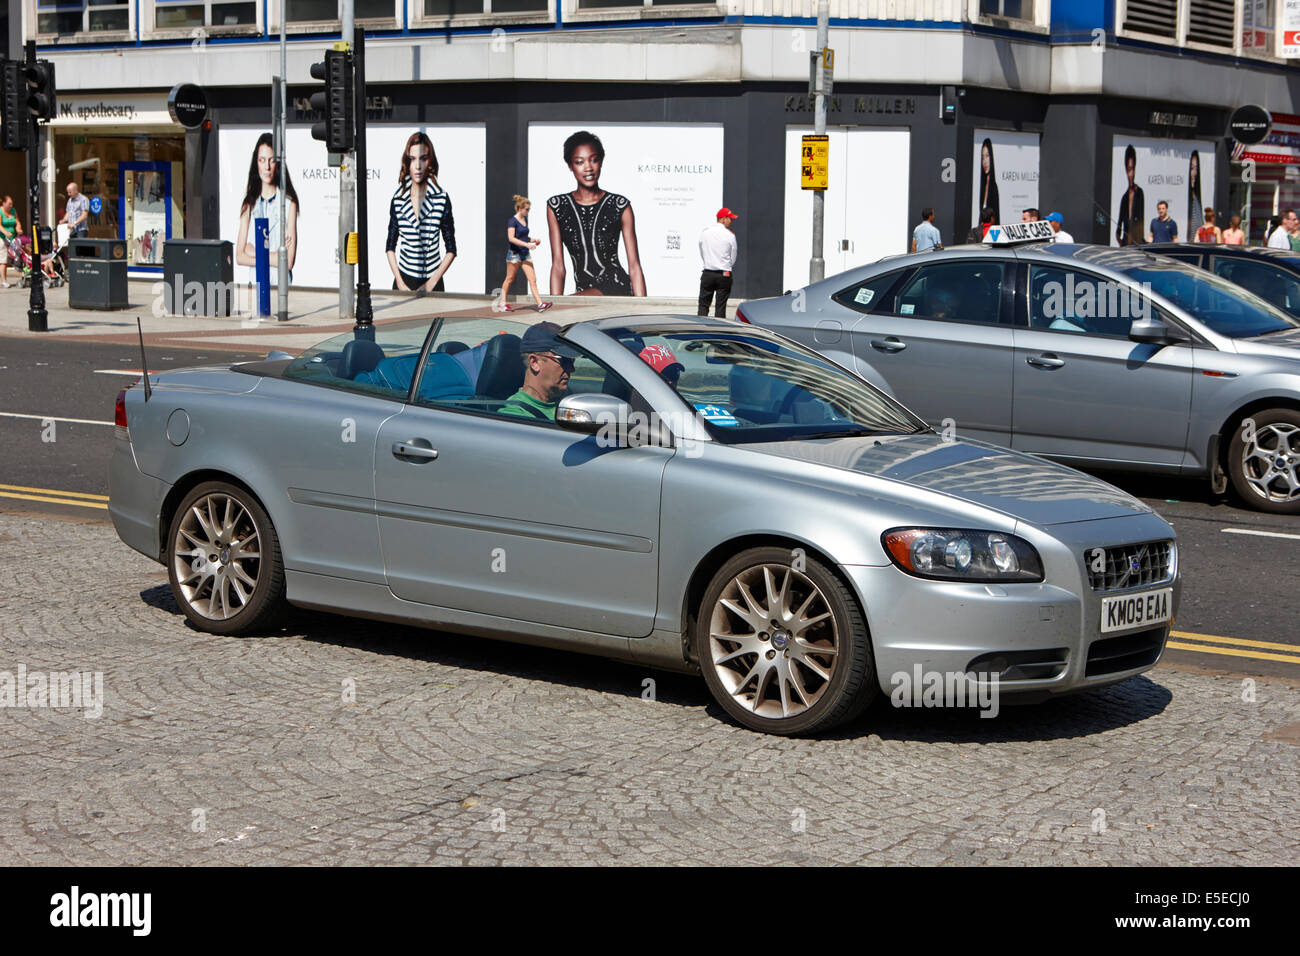 man driving a volvo convertible car on a bright sunny day Belfast city centre - Stock Image